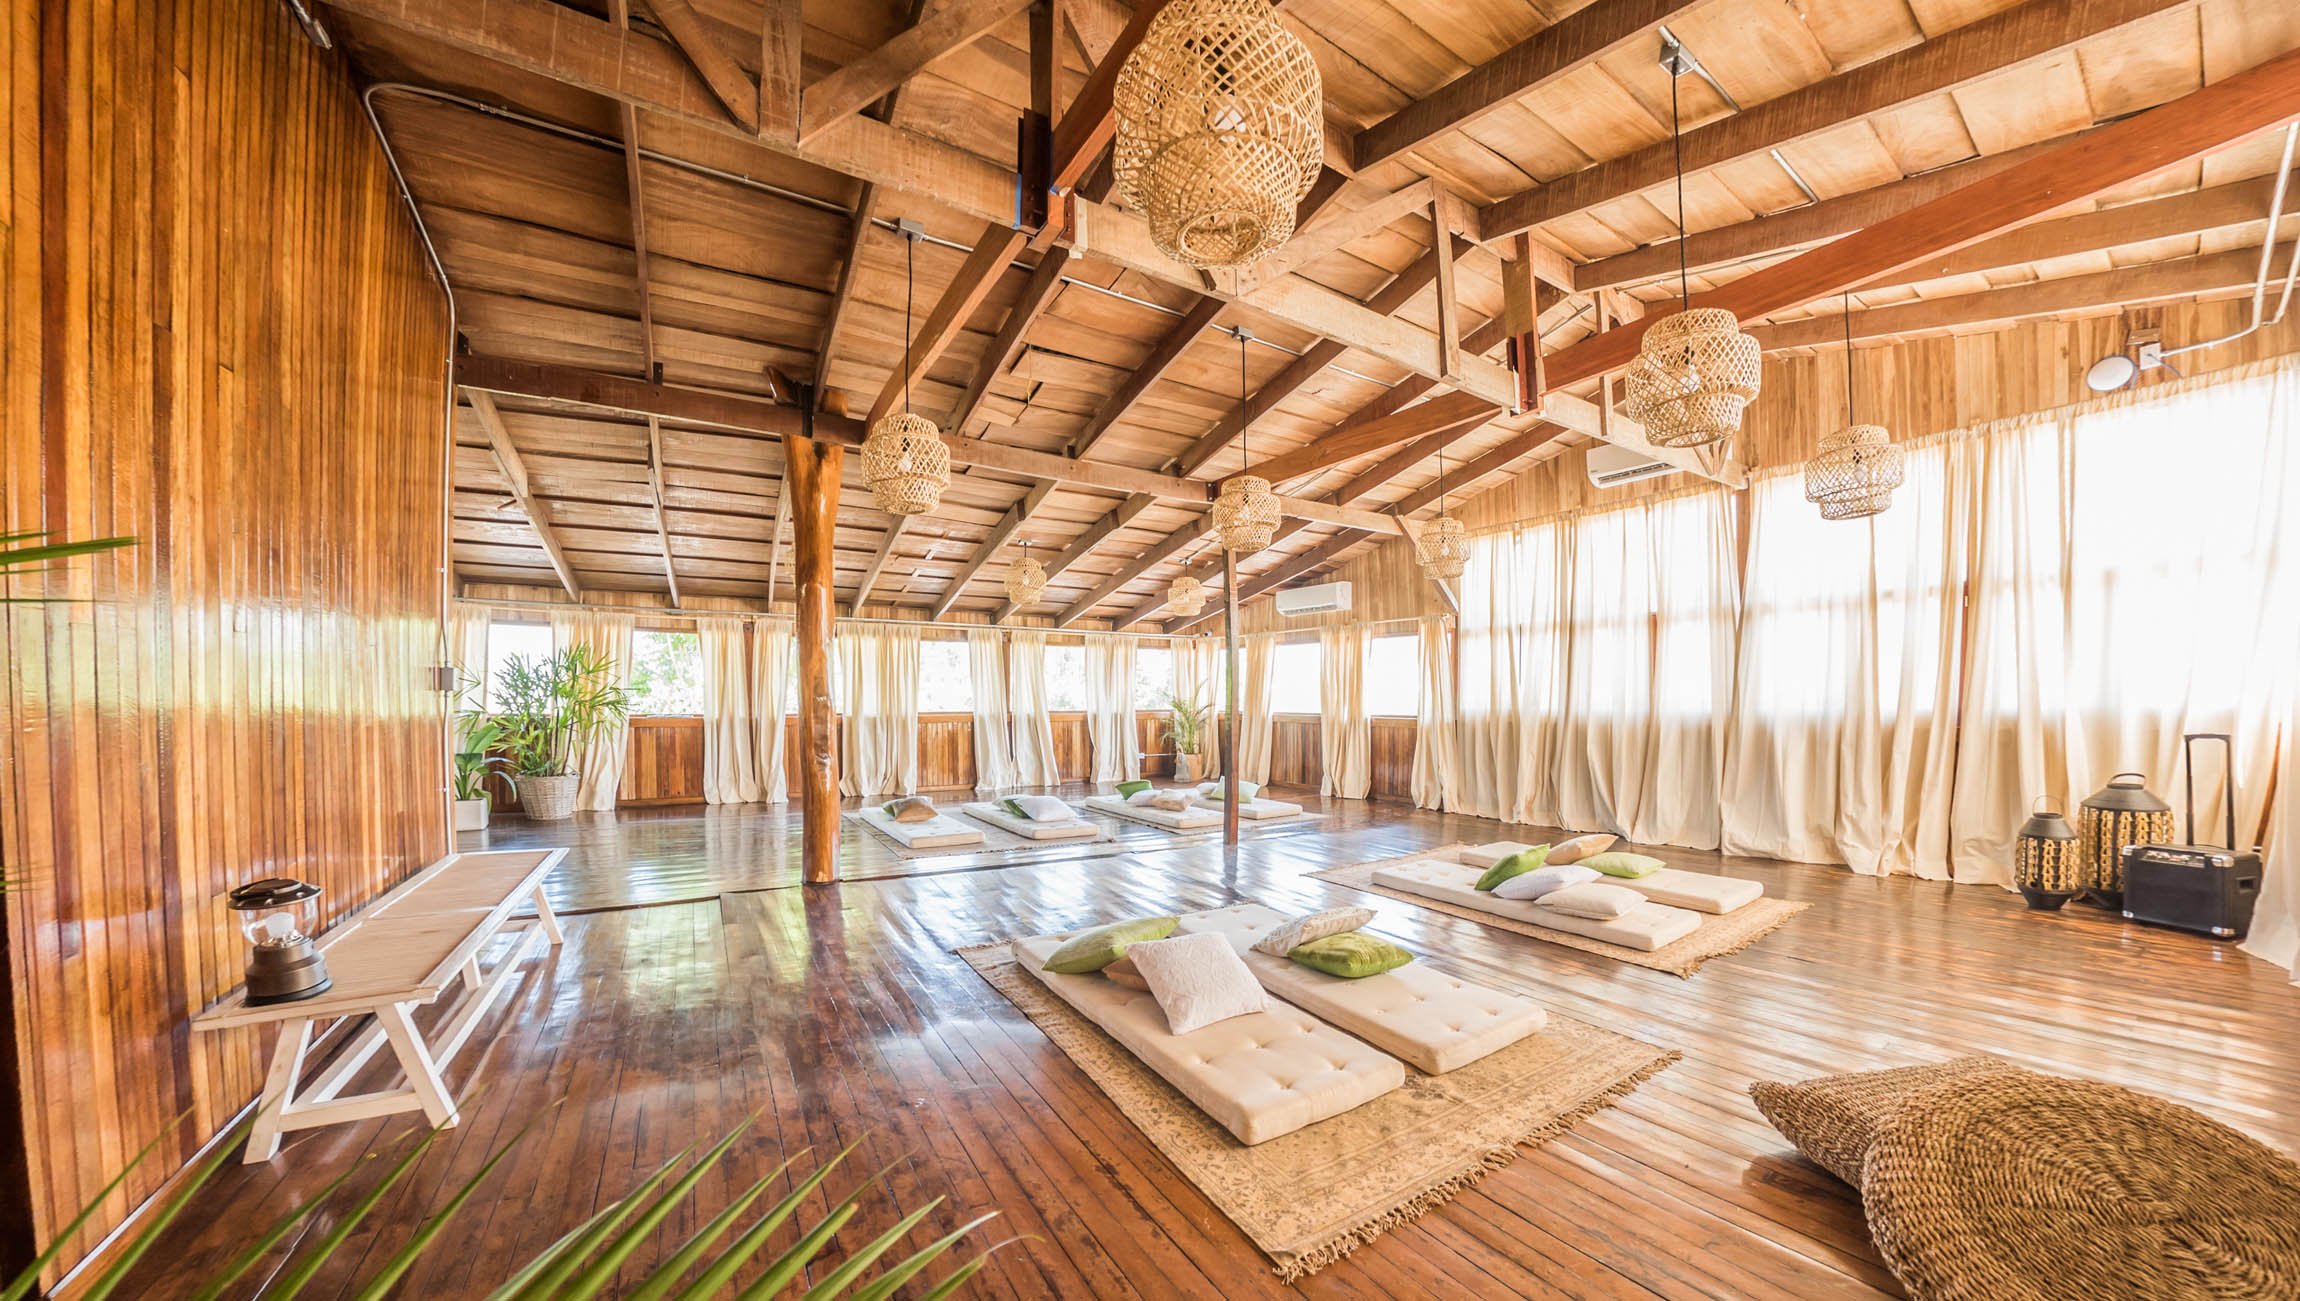 the move-ment meditation room